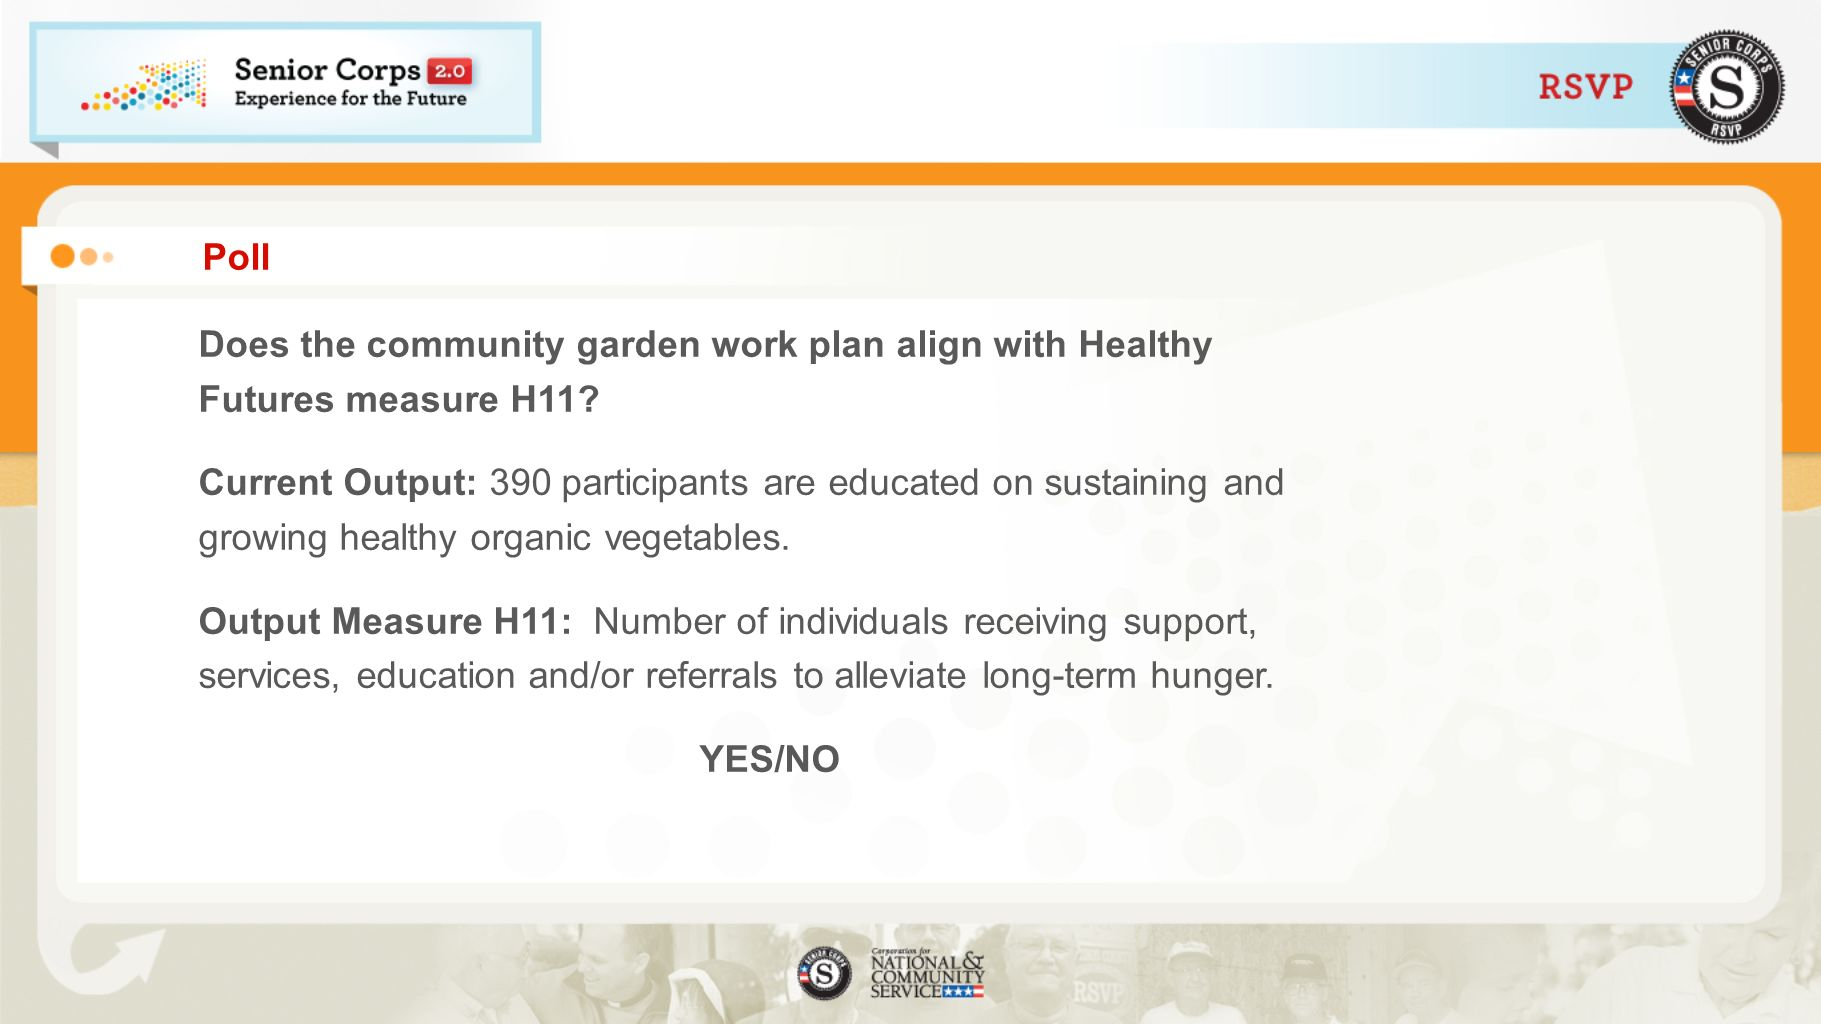 Poll Does the community garden work plan align with Healthy Futures measure H11